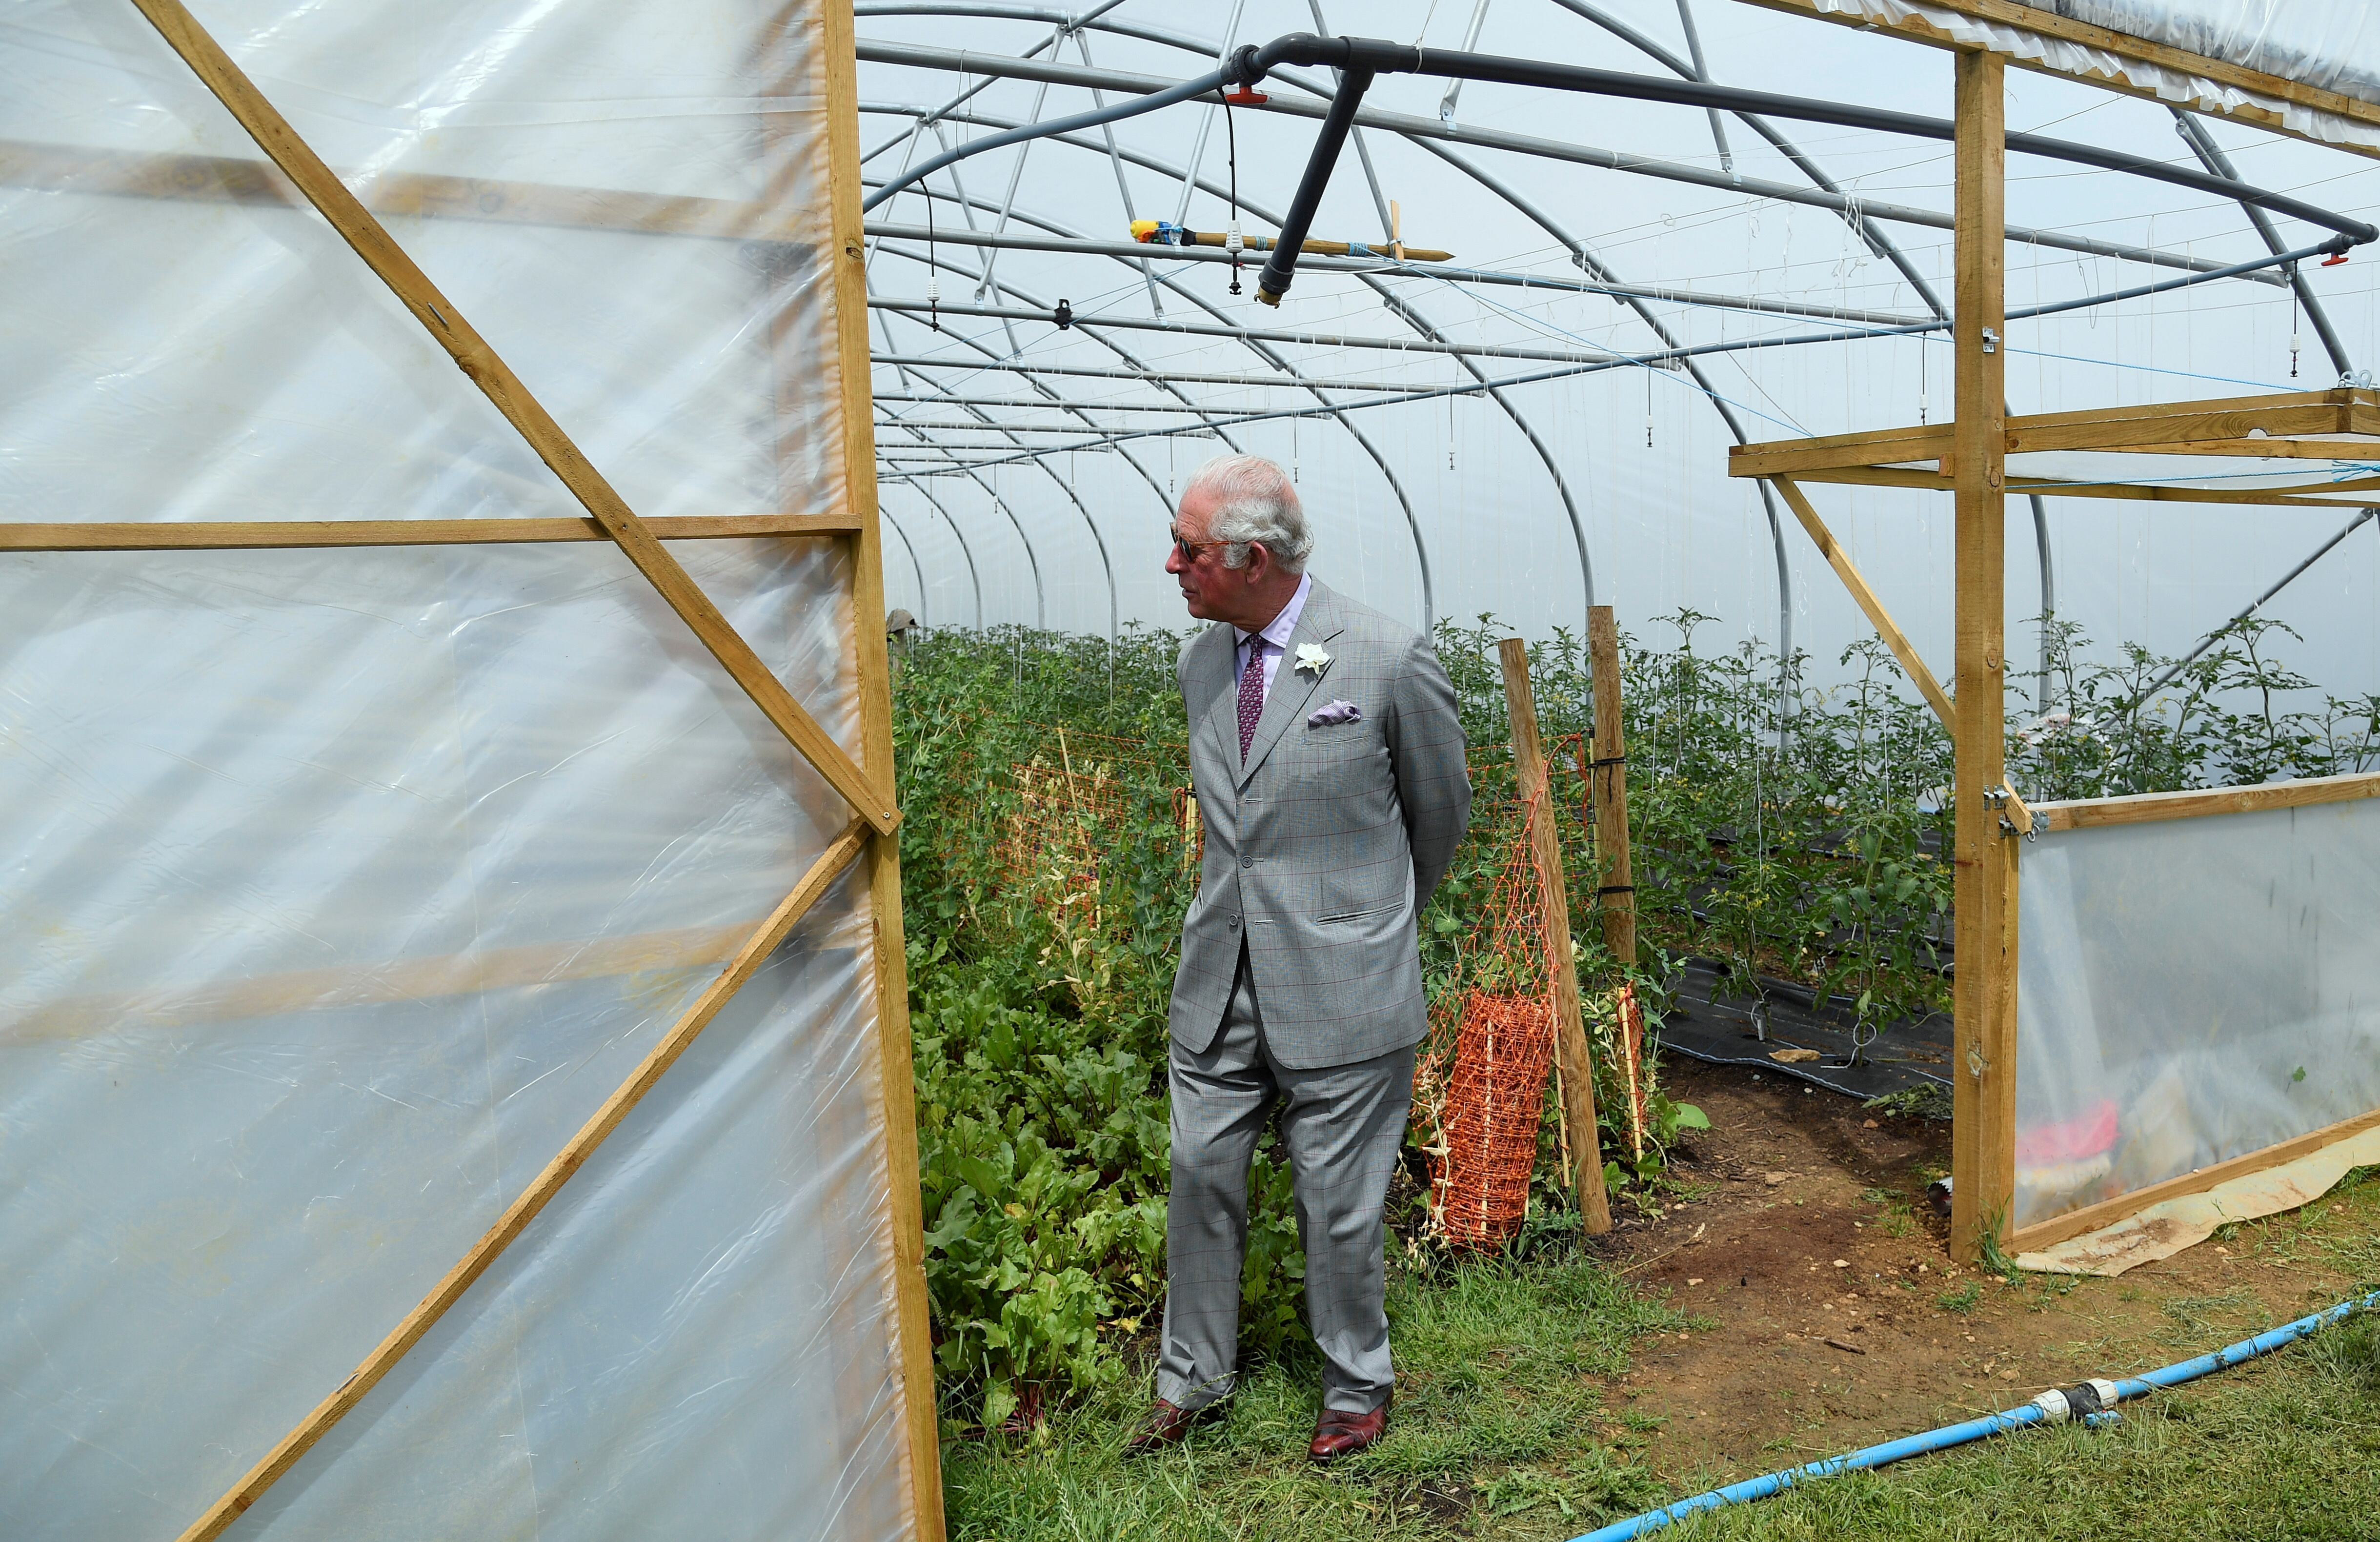 <p>CHIPPING NORTON, ENGLAND - JUNE 22: Prince Charles, Prince of Wales during a tour of FarmED on June 22, 2021 in Chipping Norton, England. FarmED provides learning spaces and events that inspire, educate, and connect people to build sustainable farming and food systems. (Photo by Toby Melville - WPA Pool/Getty Images)</p>